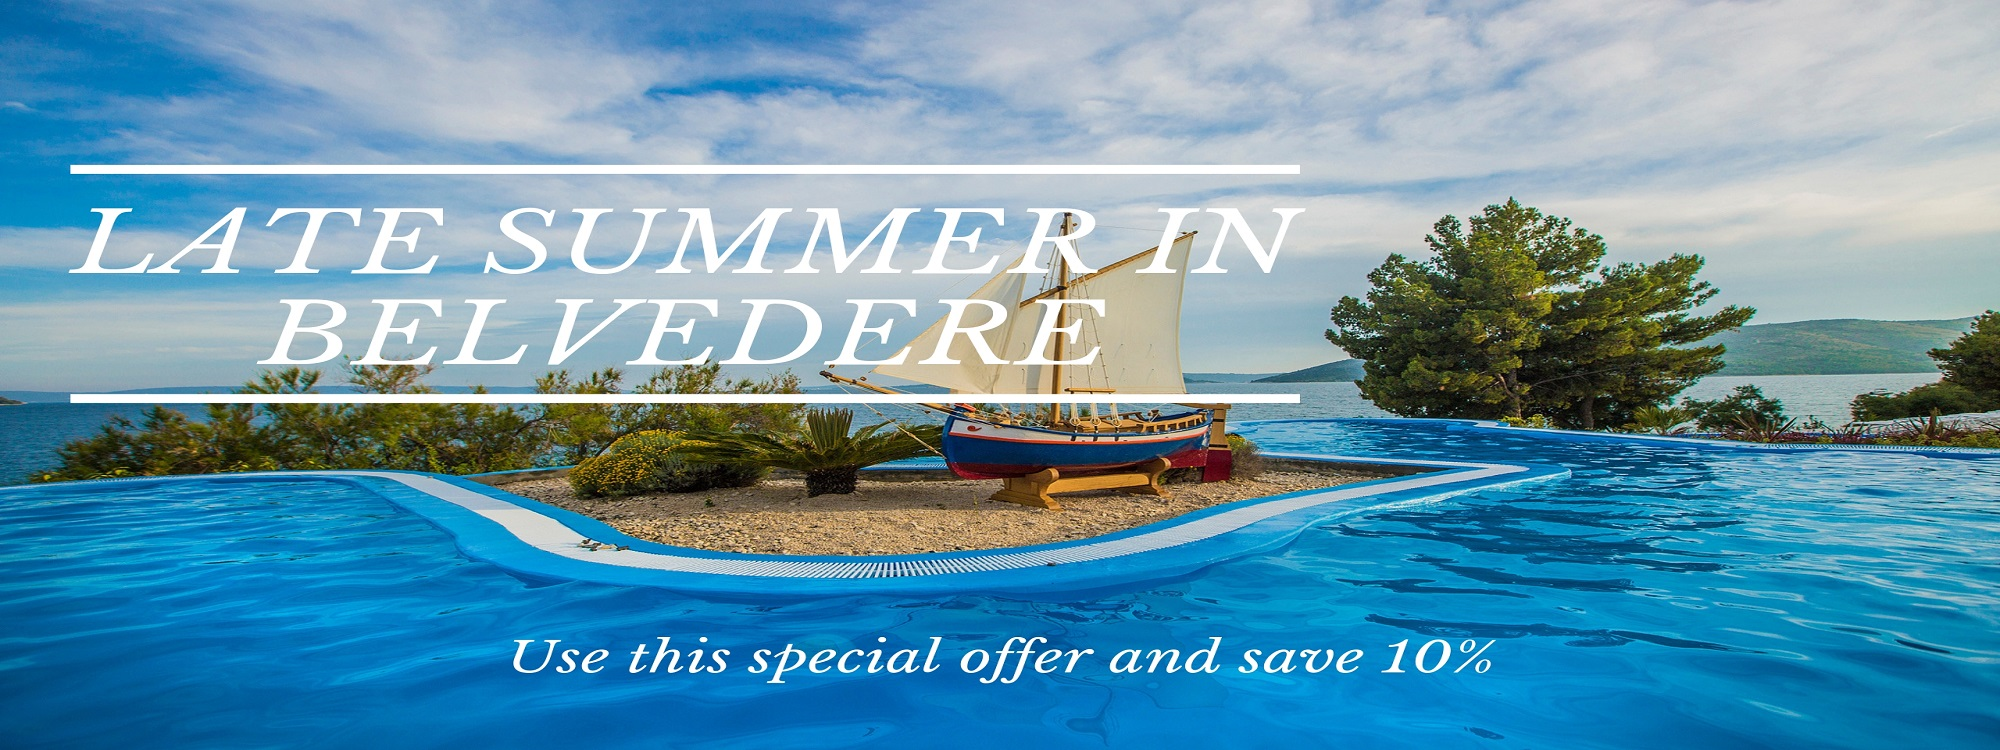 Belvedere-mobile-homes-special-offer